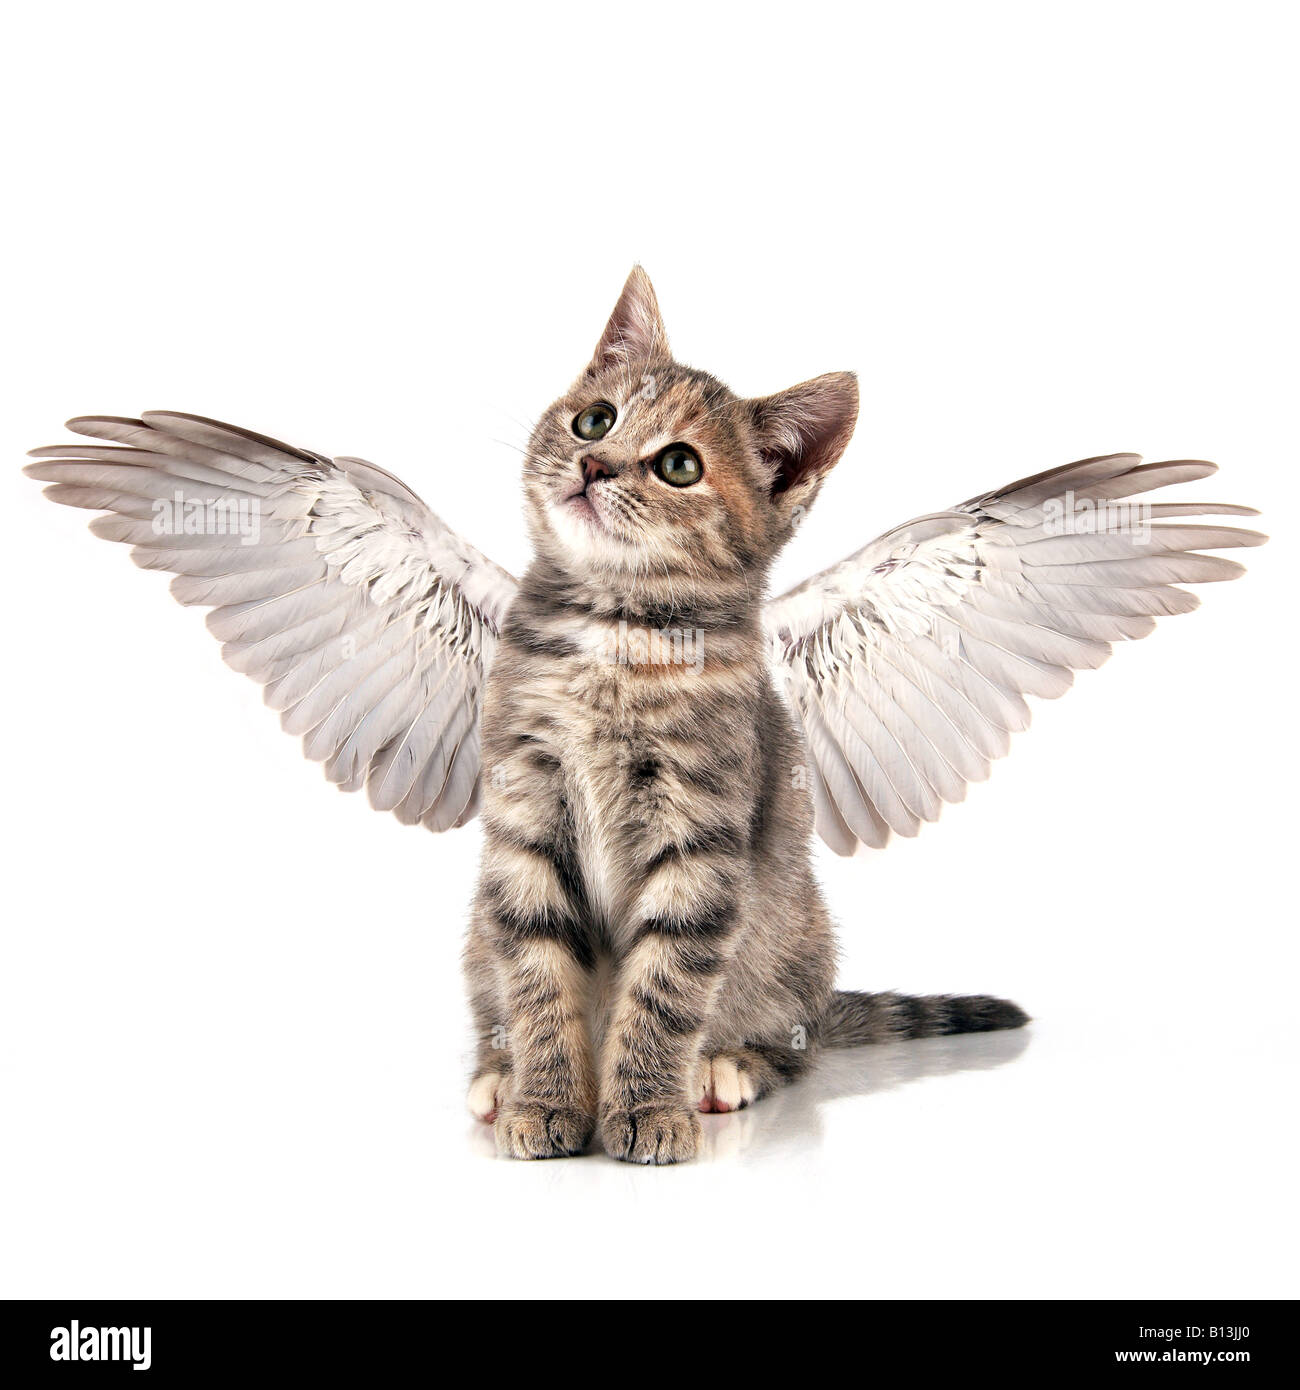 Chaton d'Angel Photo Stock